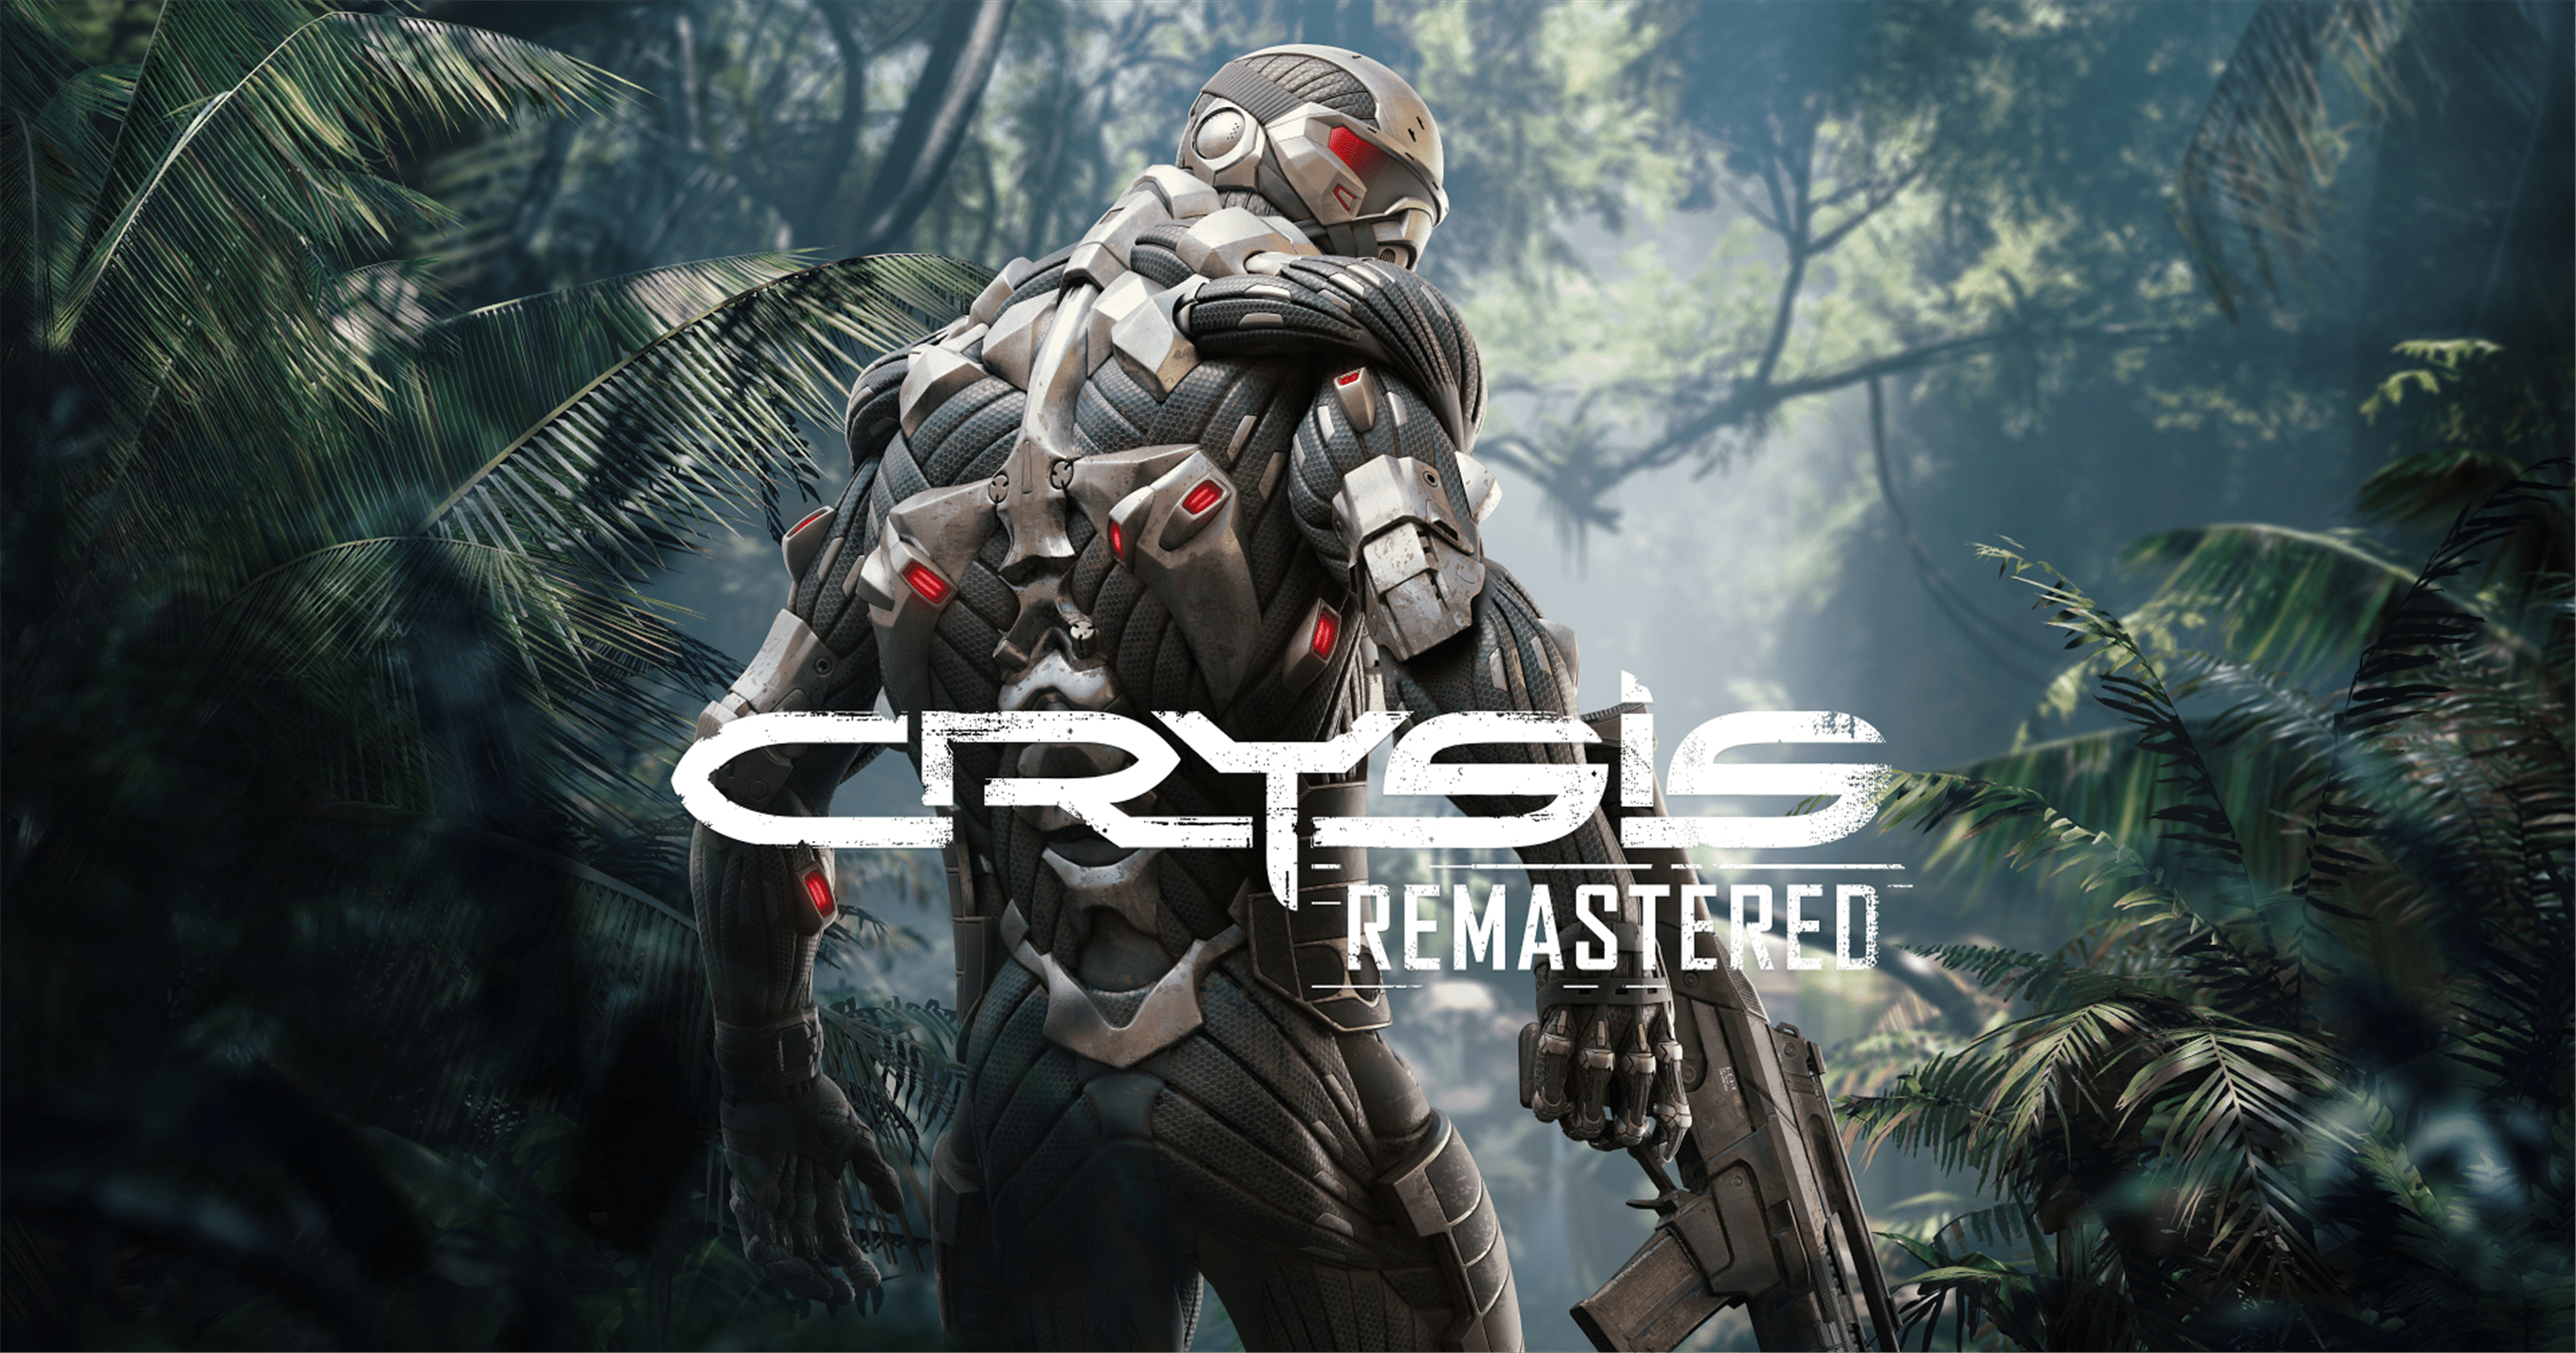 Can your PC run Crysis Remastered?